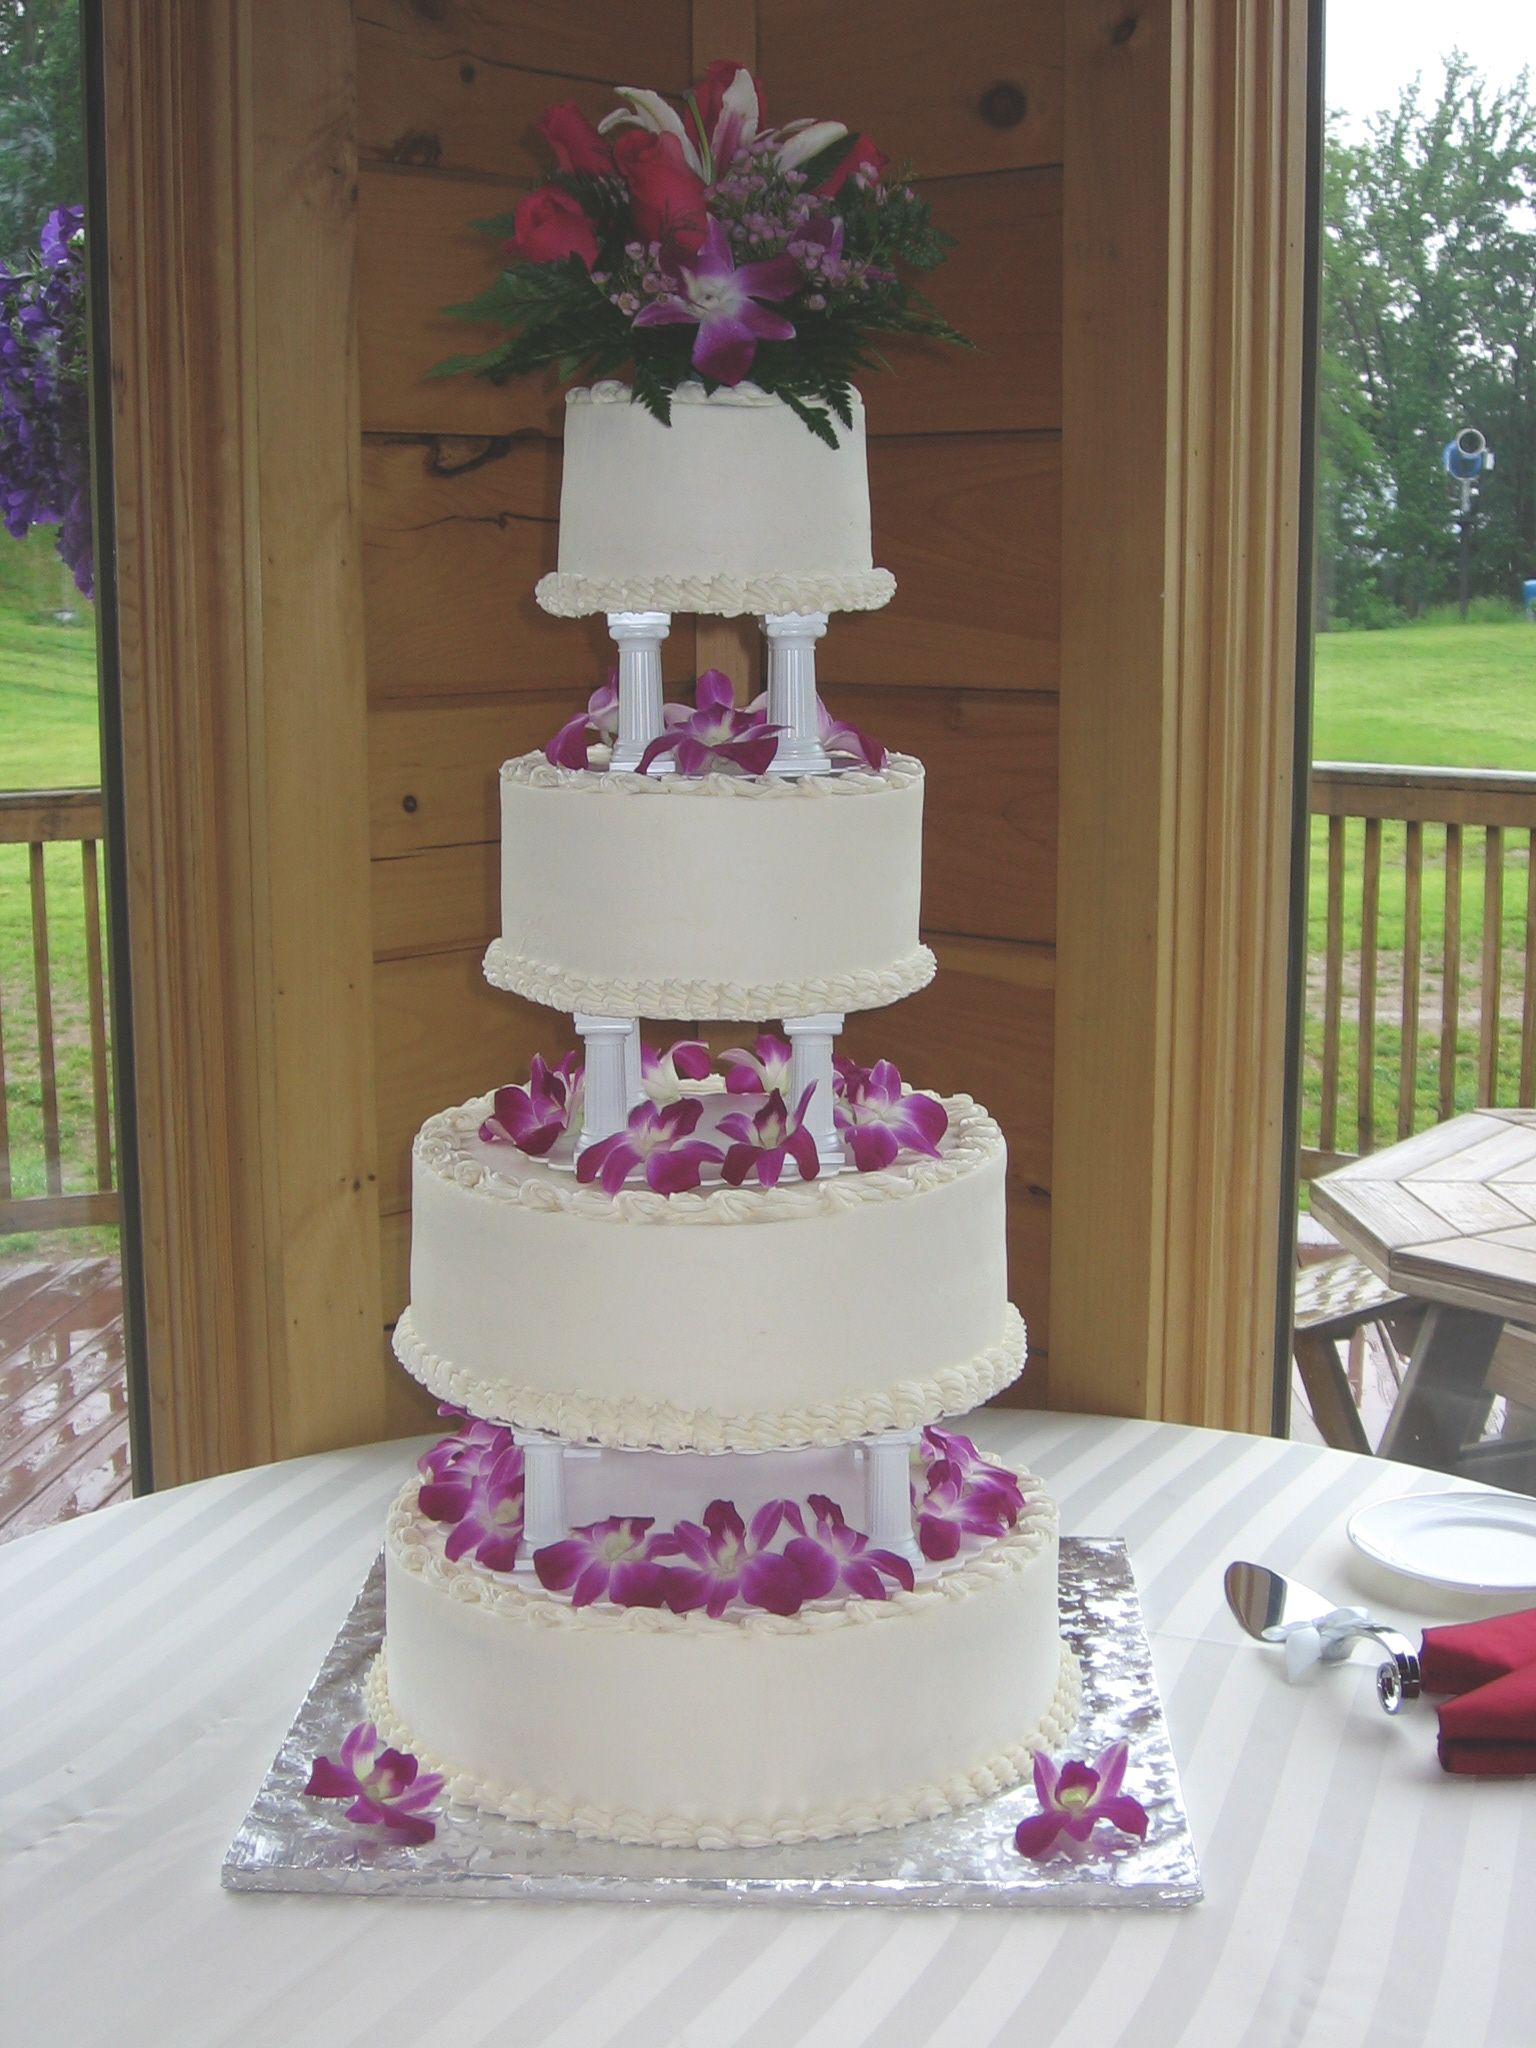 4 tier wedding cake with pillars 4 tier buttercream wedding cake with pillars 10423